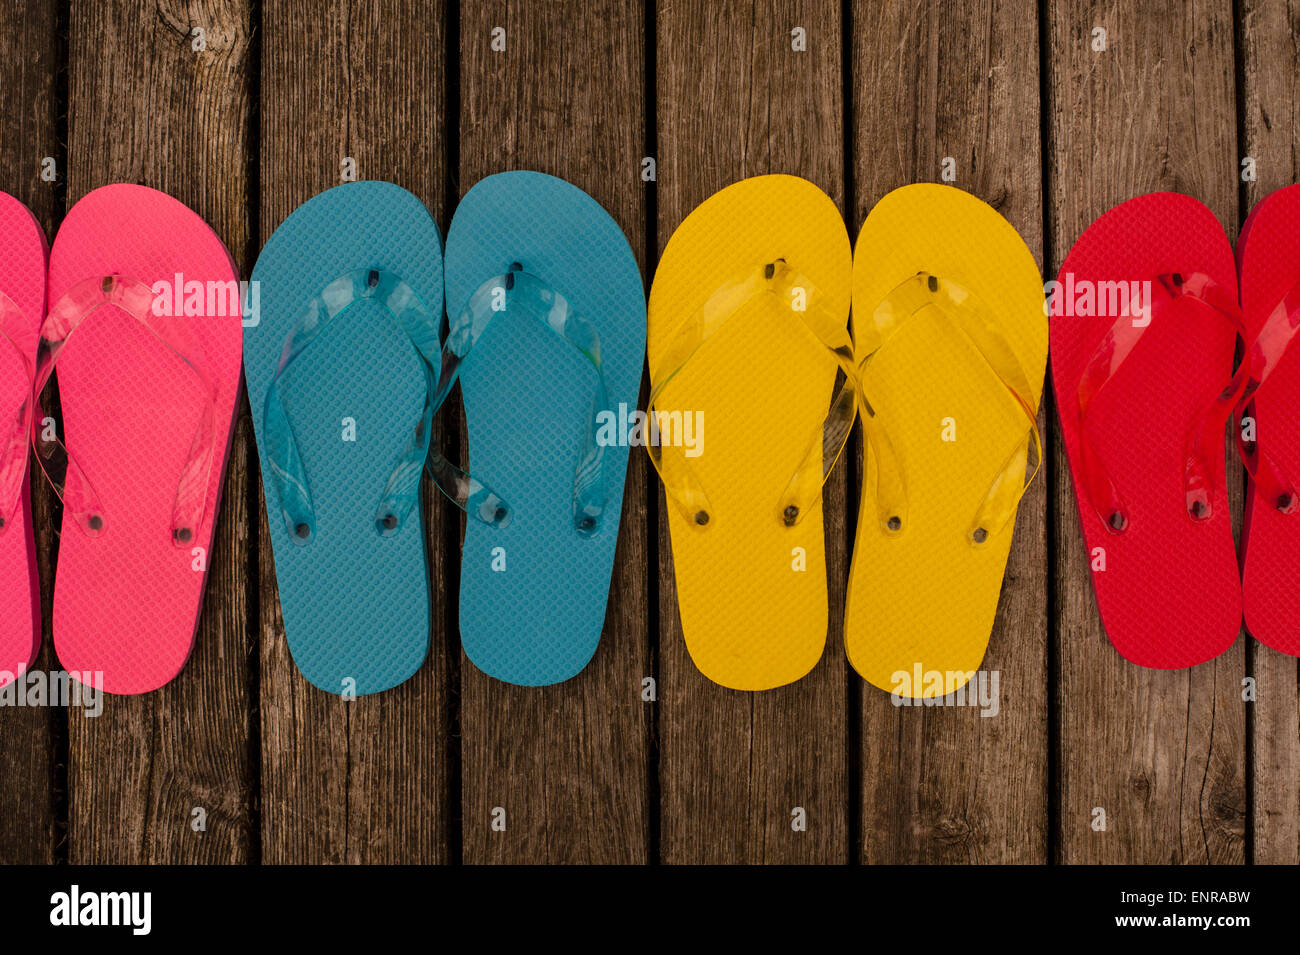 Multicolored flip flops on wooden deck - Stock Image